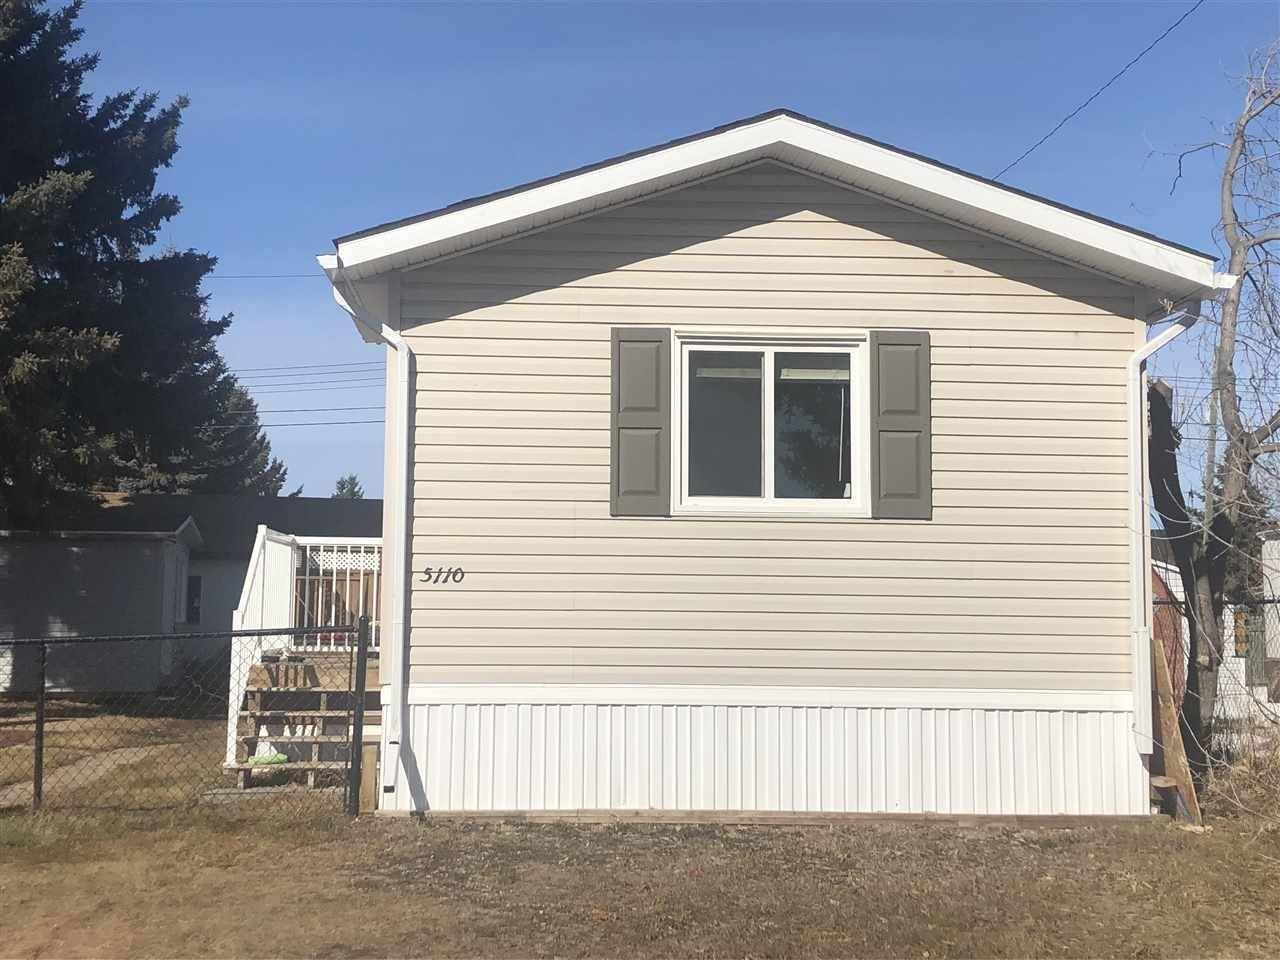 Residential property for sale at 5110 53 Ave Cold Lake Alberta - MLS: E4192523